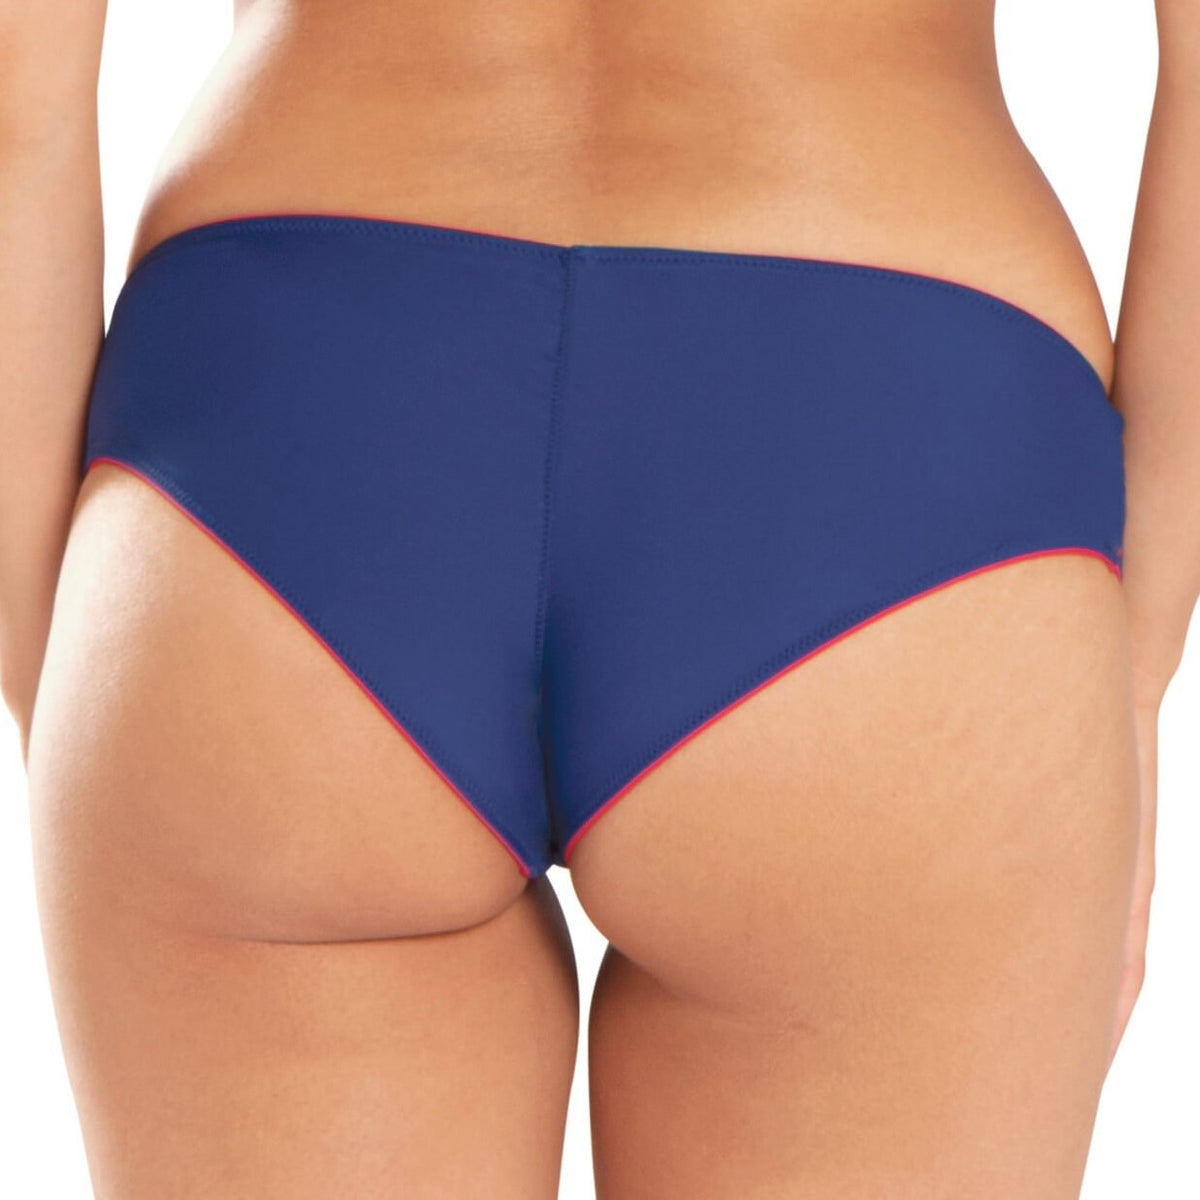 CRVS1003 Peachy Pairs Reversible Short Swim Bottom |NAVY/RED|